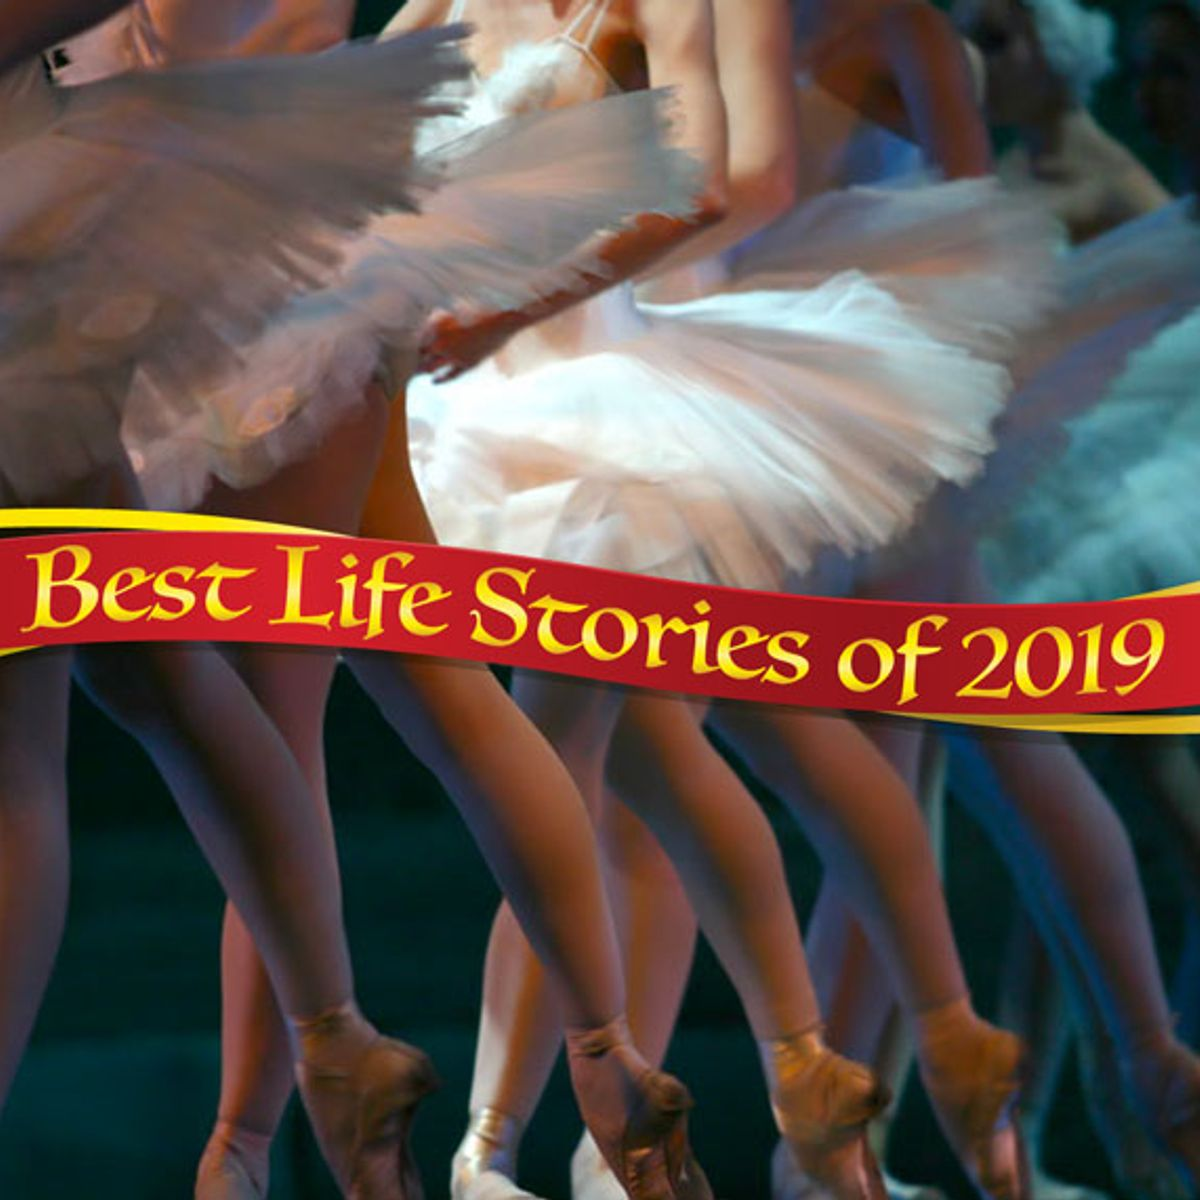 Best of 2019: The last time I danced